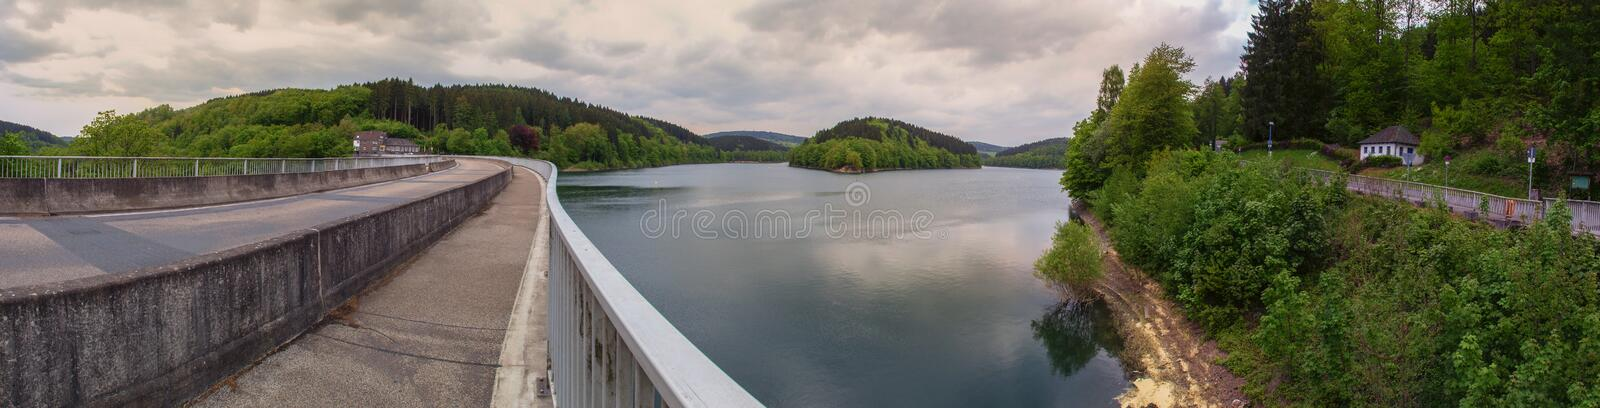 aggertalsperre dam germany high definition panorama royalty free stock photography